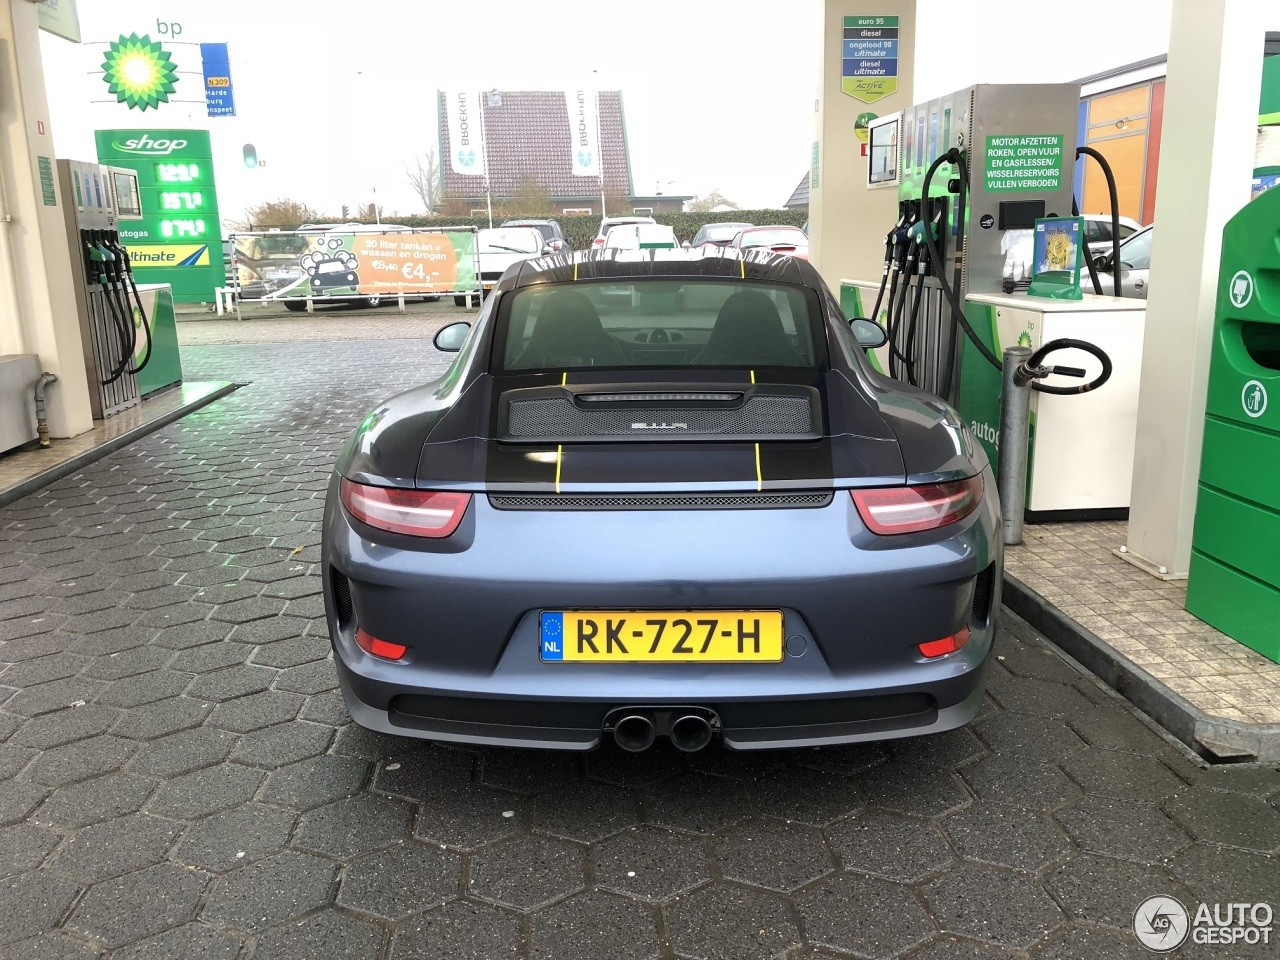 911R For Sale >> 2017 Porsche 911r For Sale At 420 000 In Germany Seems Like A